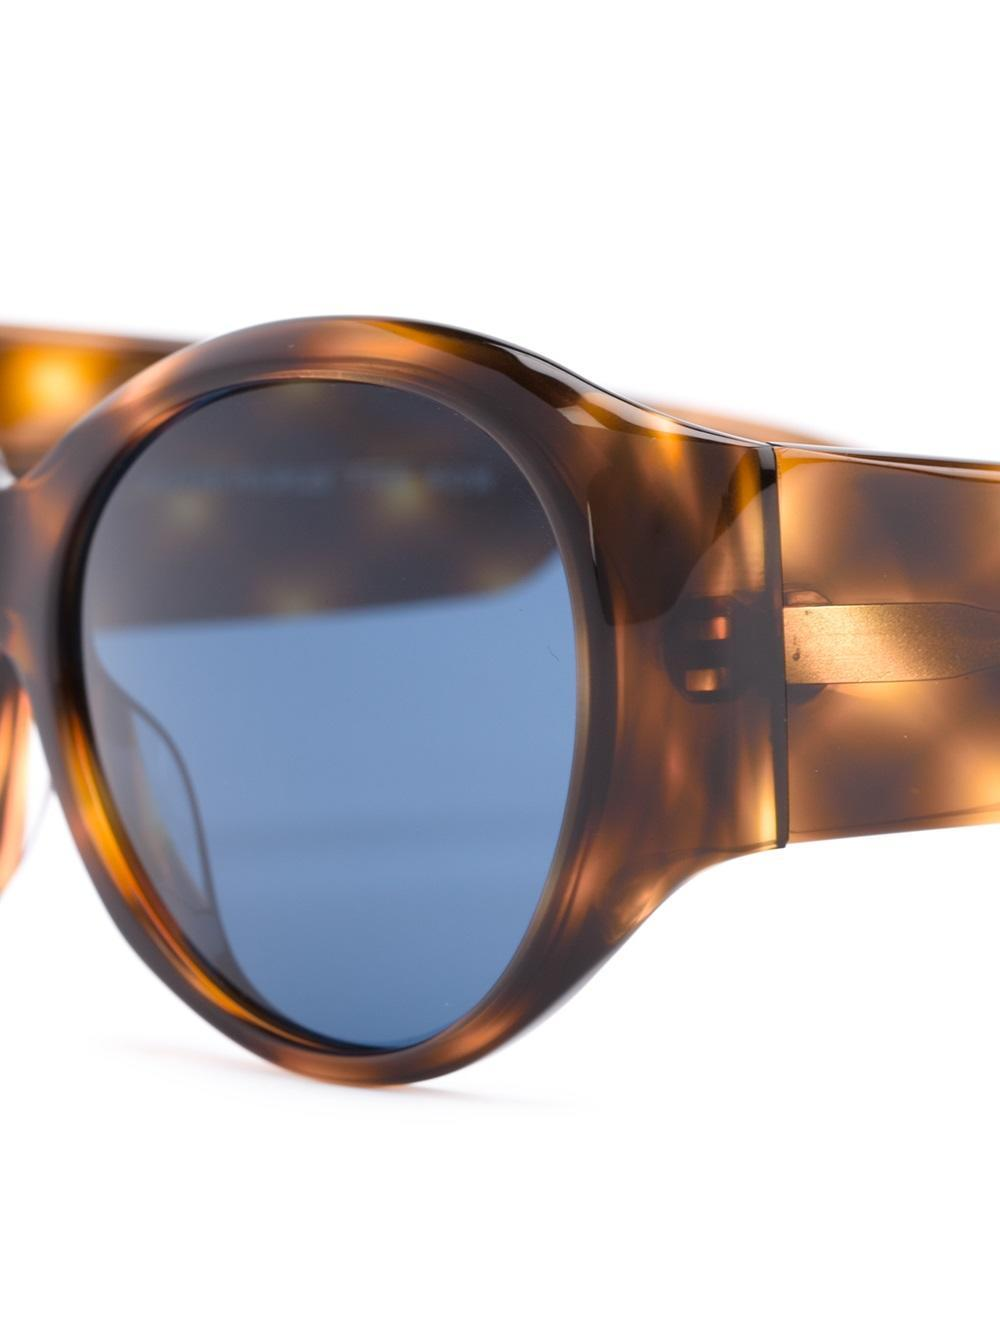 Oliver Peoples Don't Bother Me Oval Sunglasses in Brown